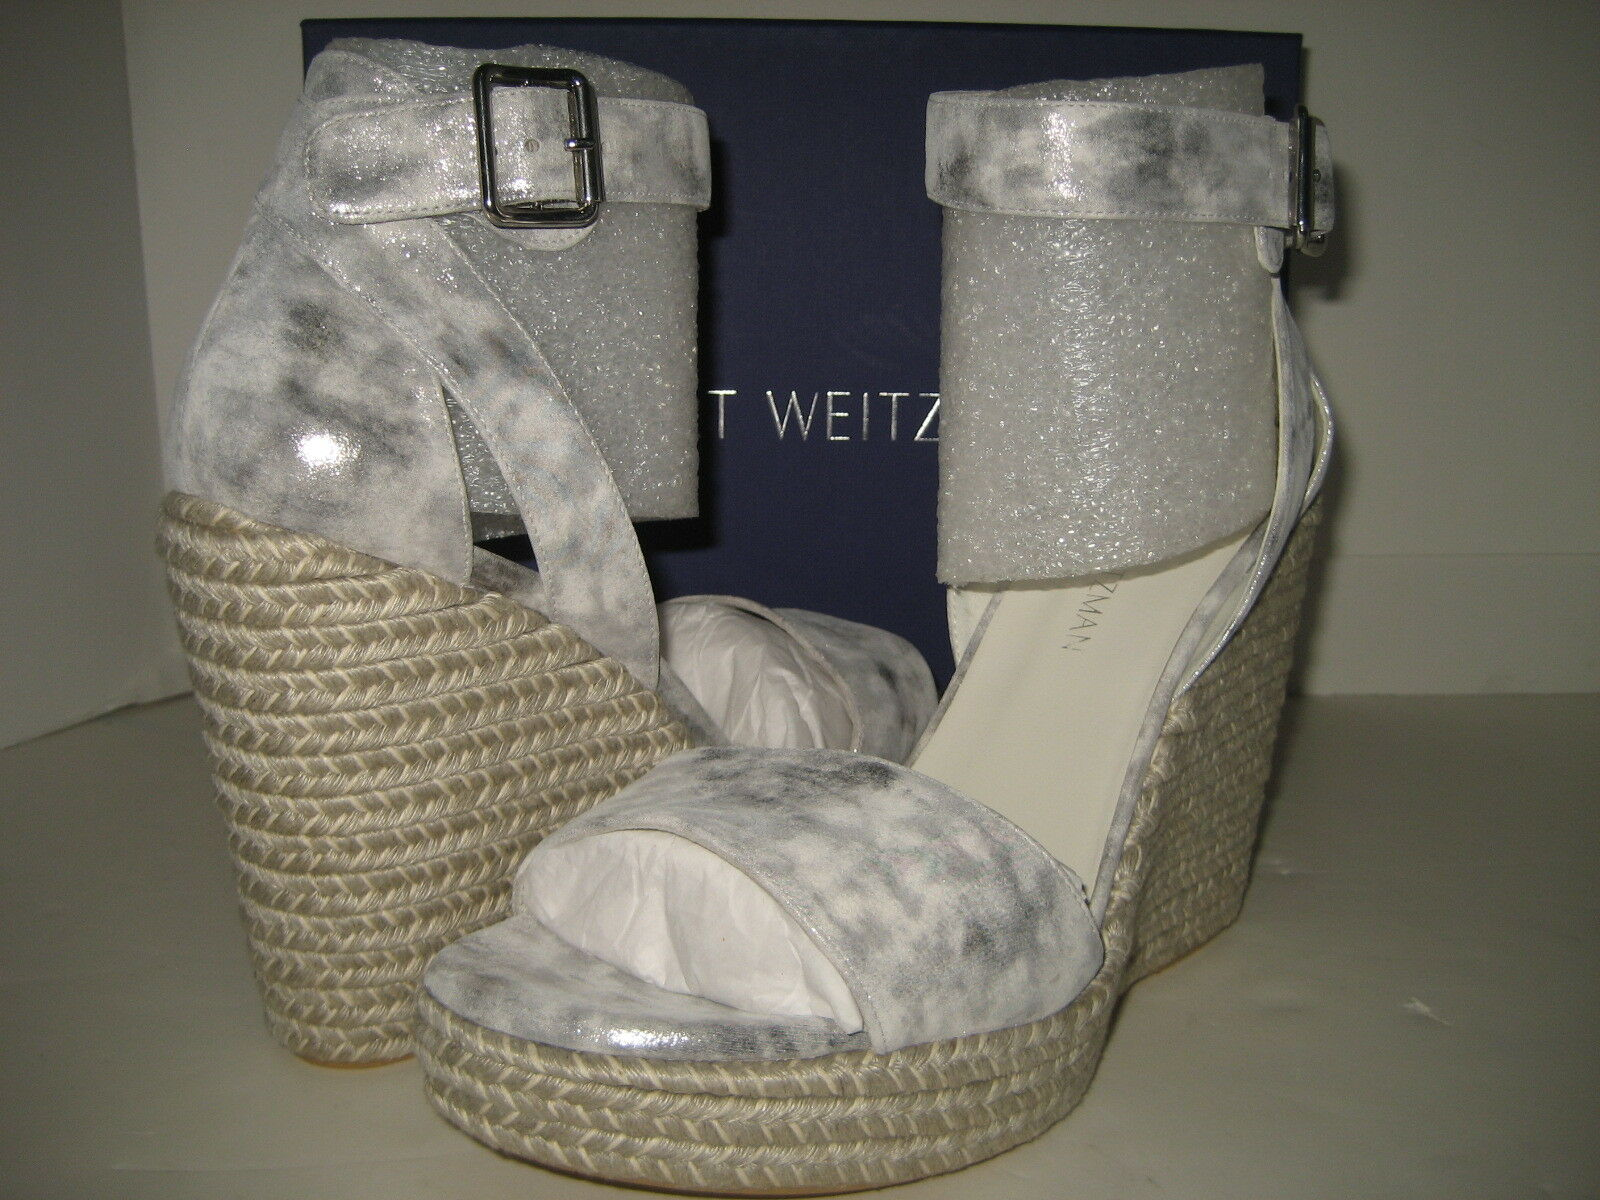 ti aspetto  398 NEW Stuart Weitzman donna US 11 Mostly Lead Lead Lead Clouded Wedge Sandals scarpe BX  preferenziale